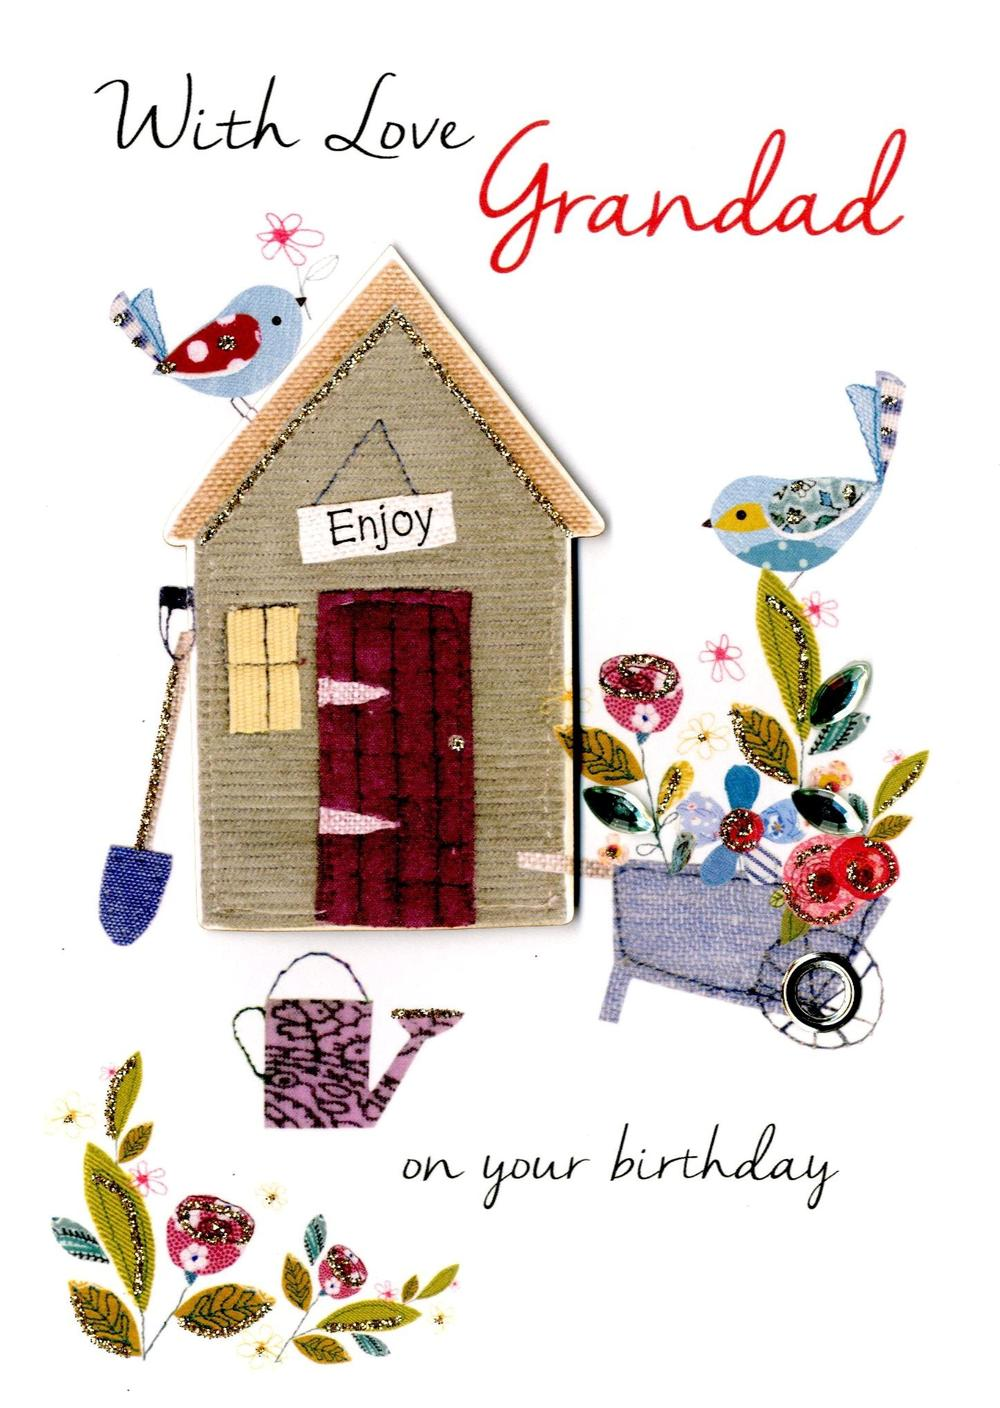 With Love Grandad Birthday Greeting Card